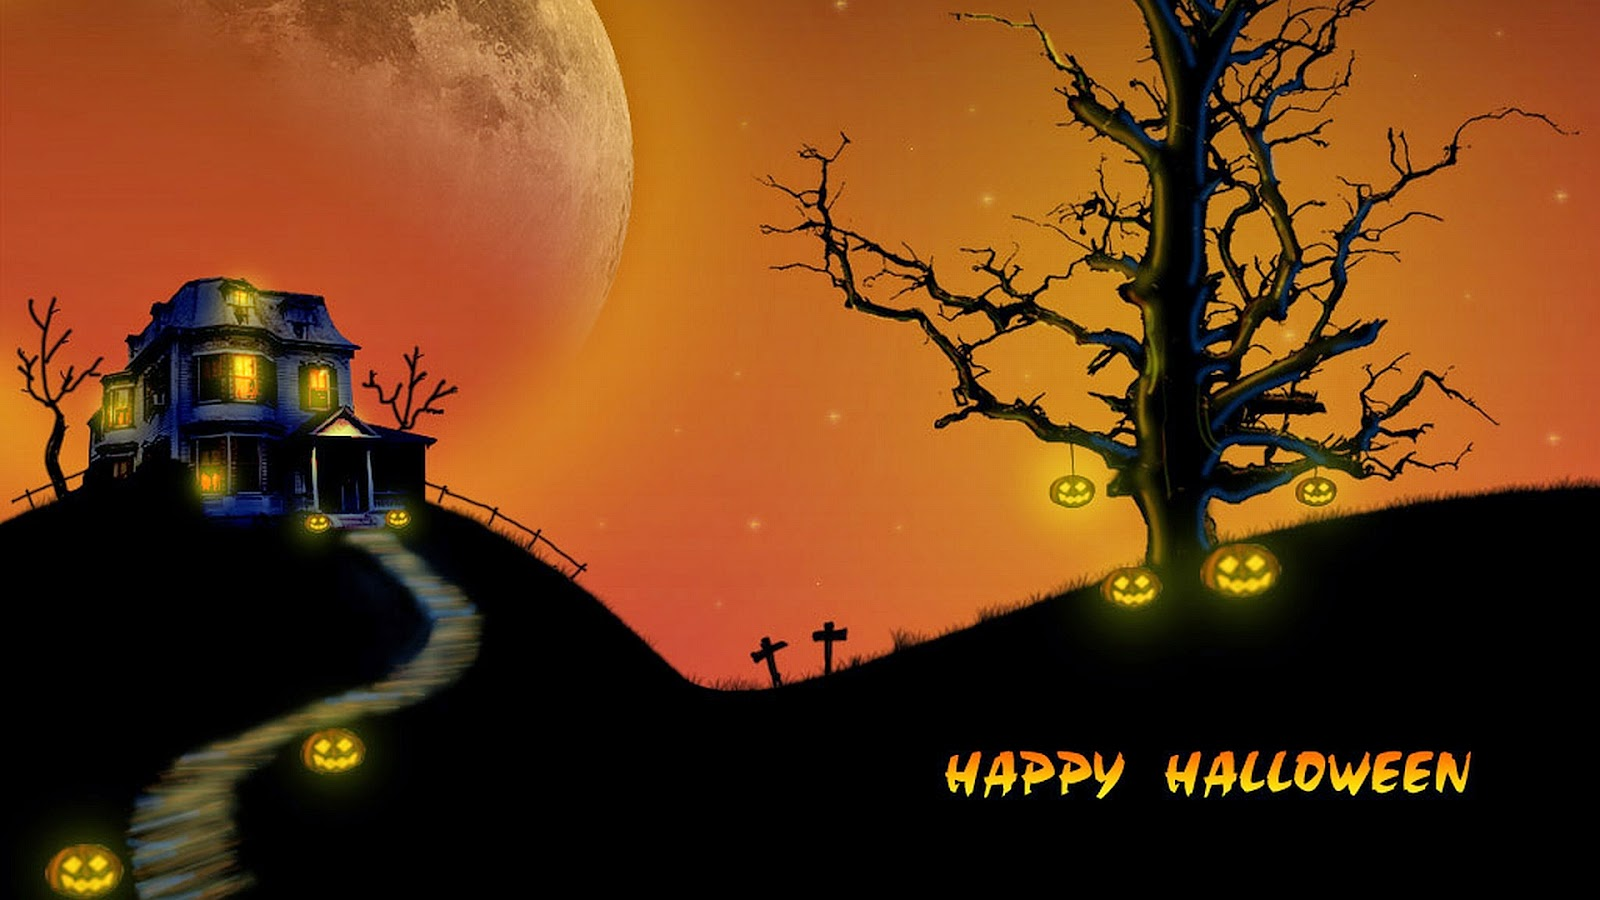 Happy-halloween-haunted-house-theme-picture-images.jpg